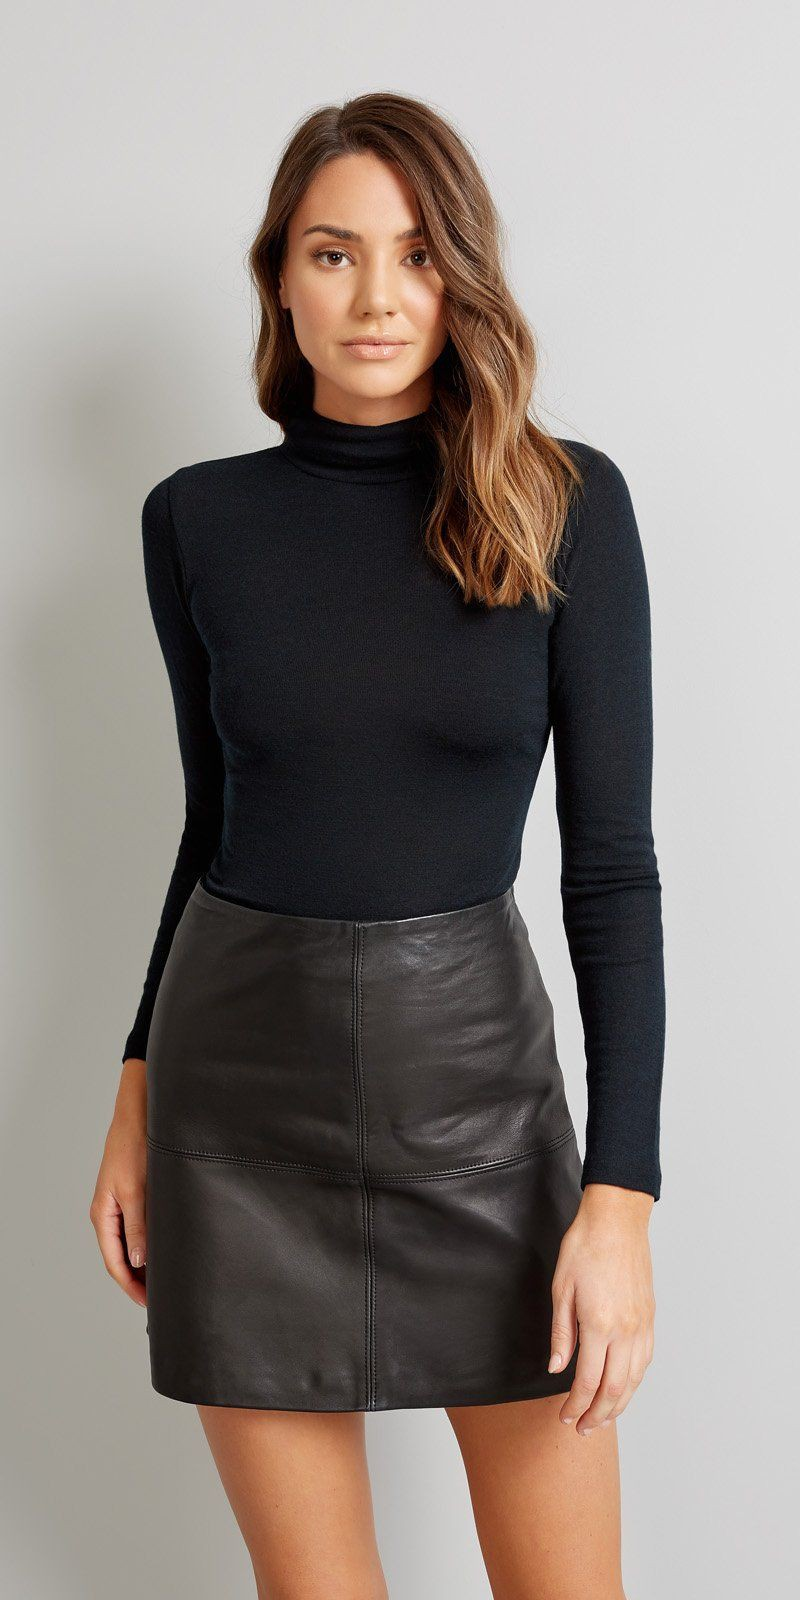 Leather skirt and polo neck